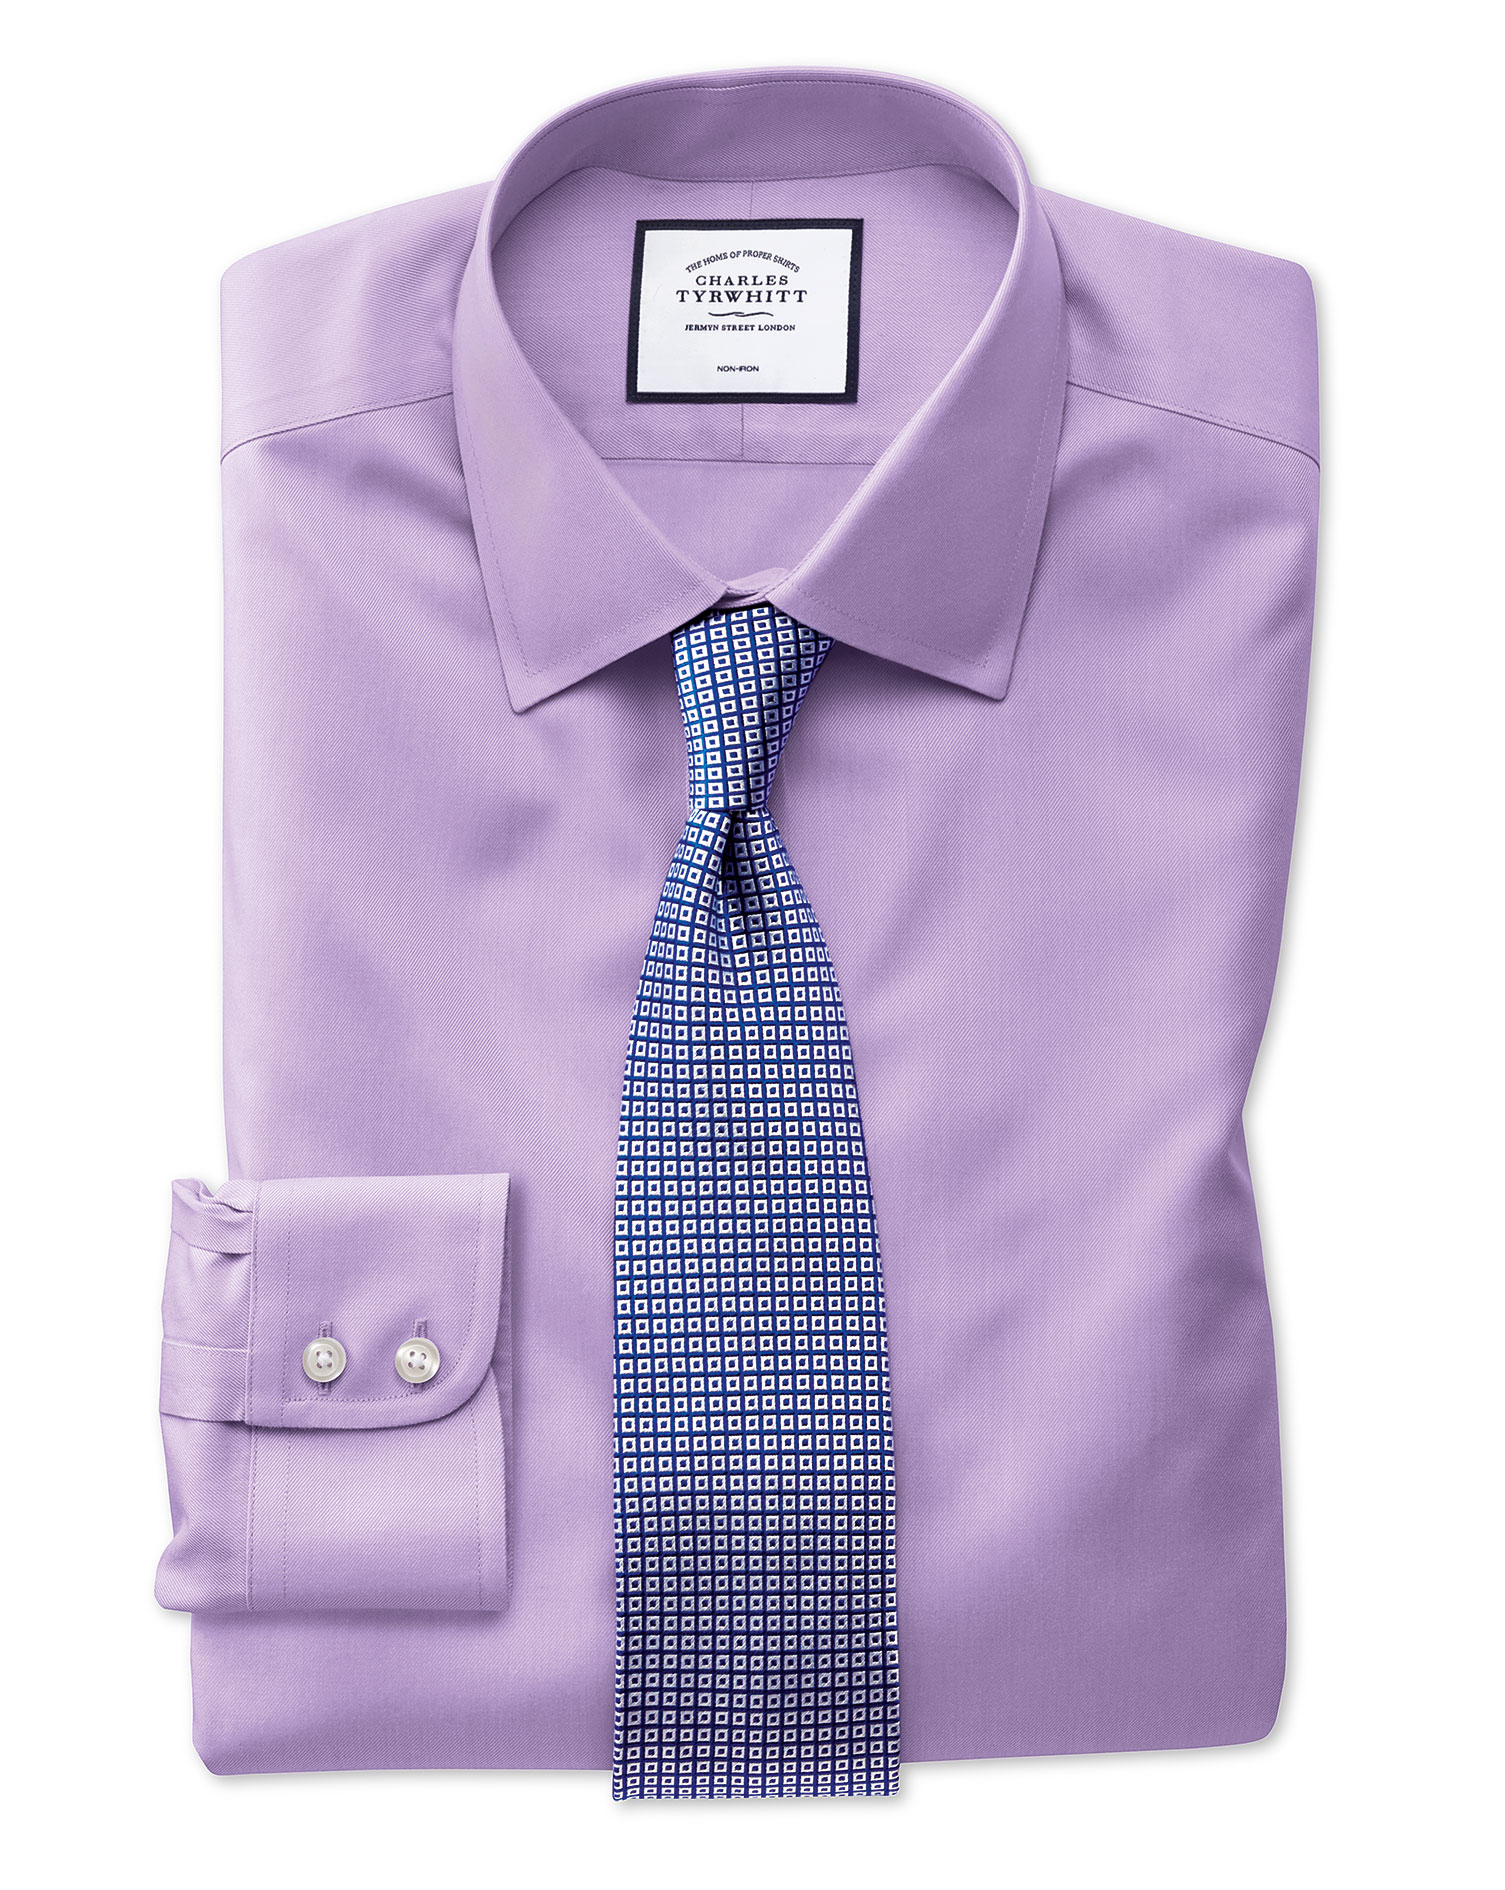 Slim Fit Non-Iron Light Lilac Twill Cotton Formal Shirt Single Cuff Size 17/36 by Charles Tyrwhitt